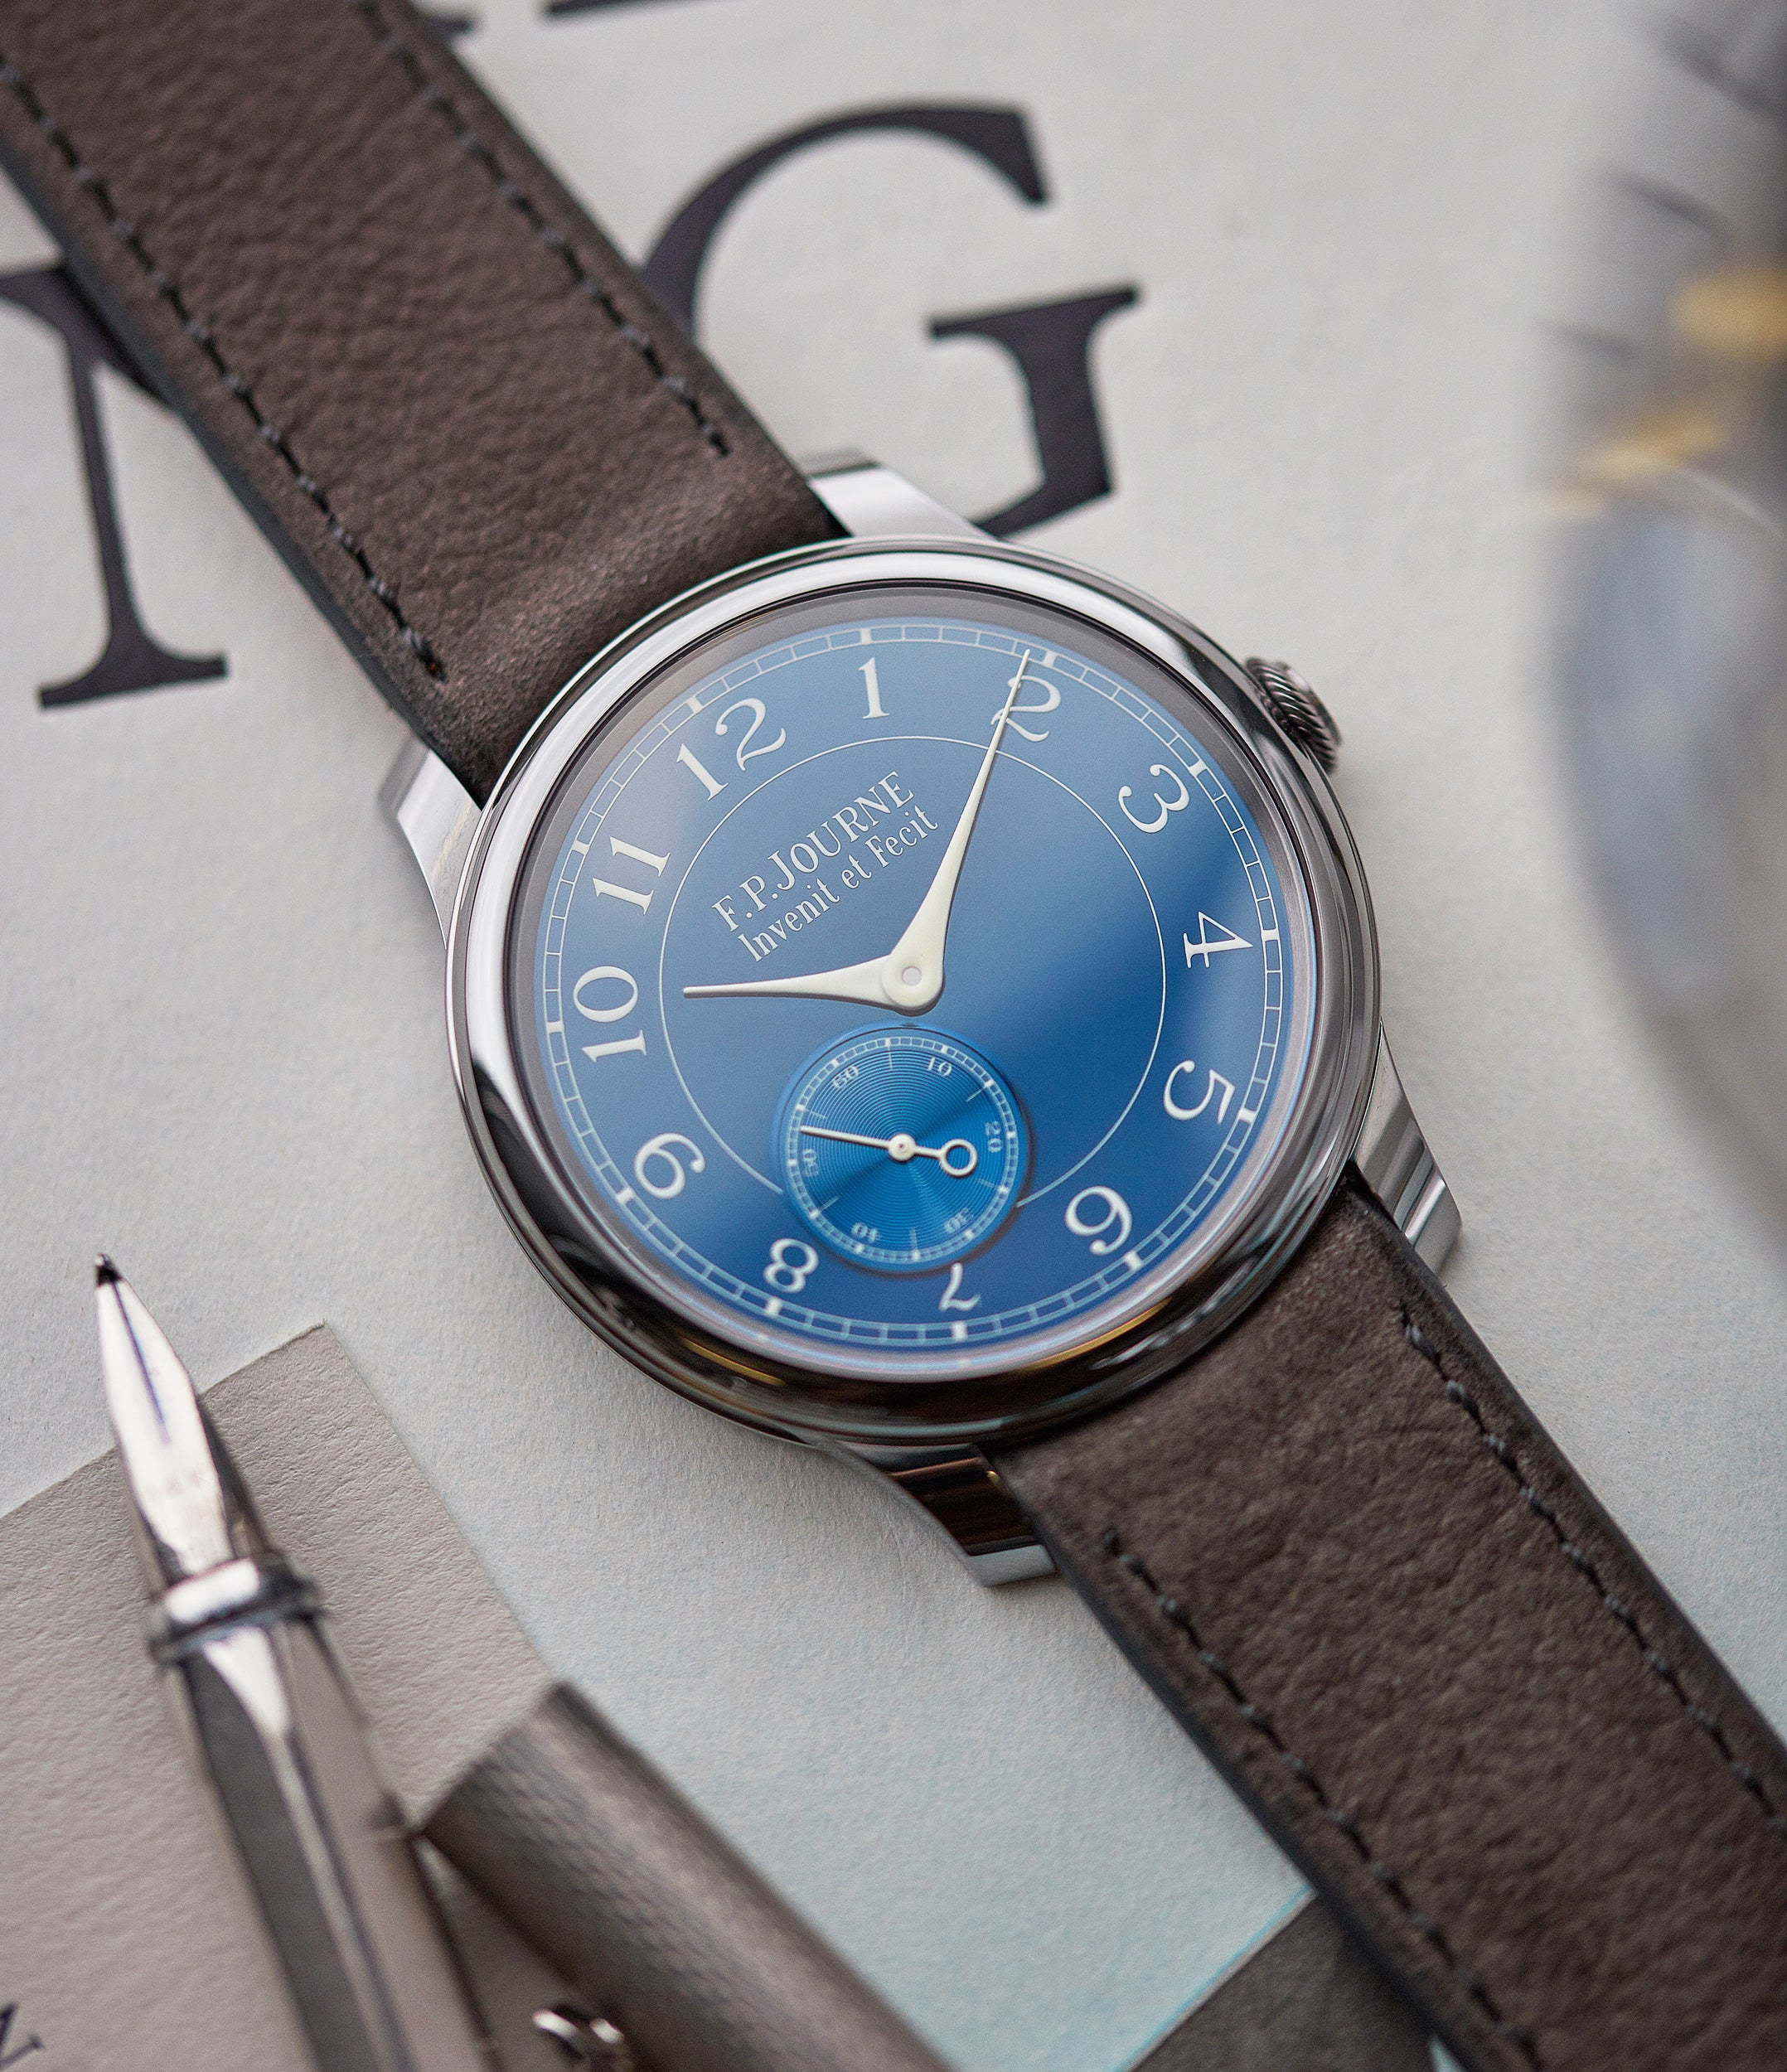 full set F. P. Journe Chronometre Bleu tantalum blue dial rare dress watch for sale online at A Collected Man London approved reseller of independent watchmakers